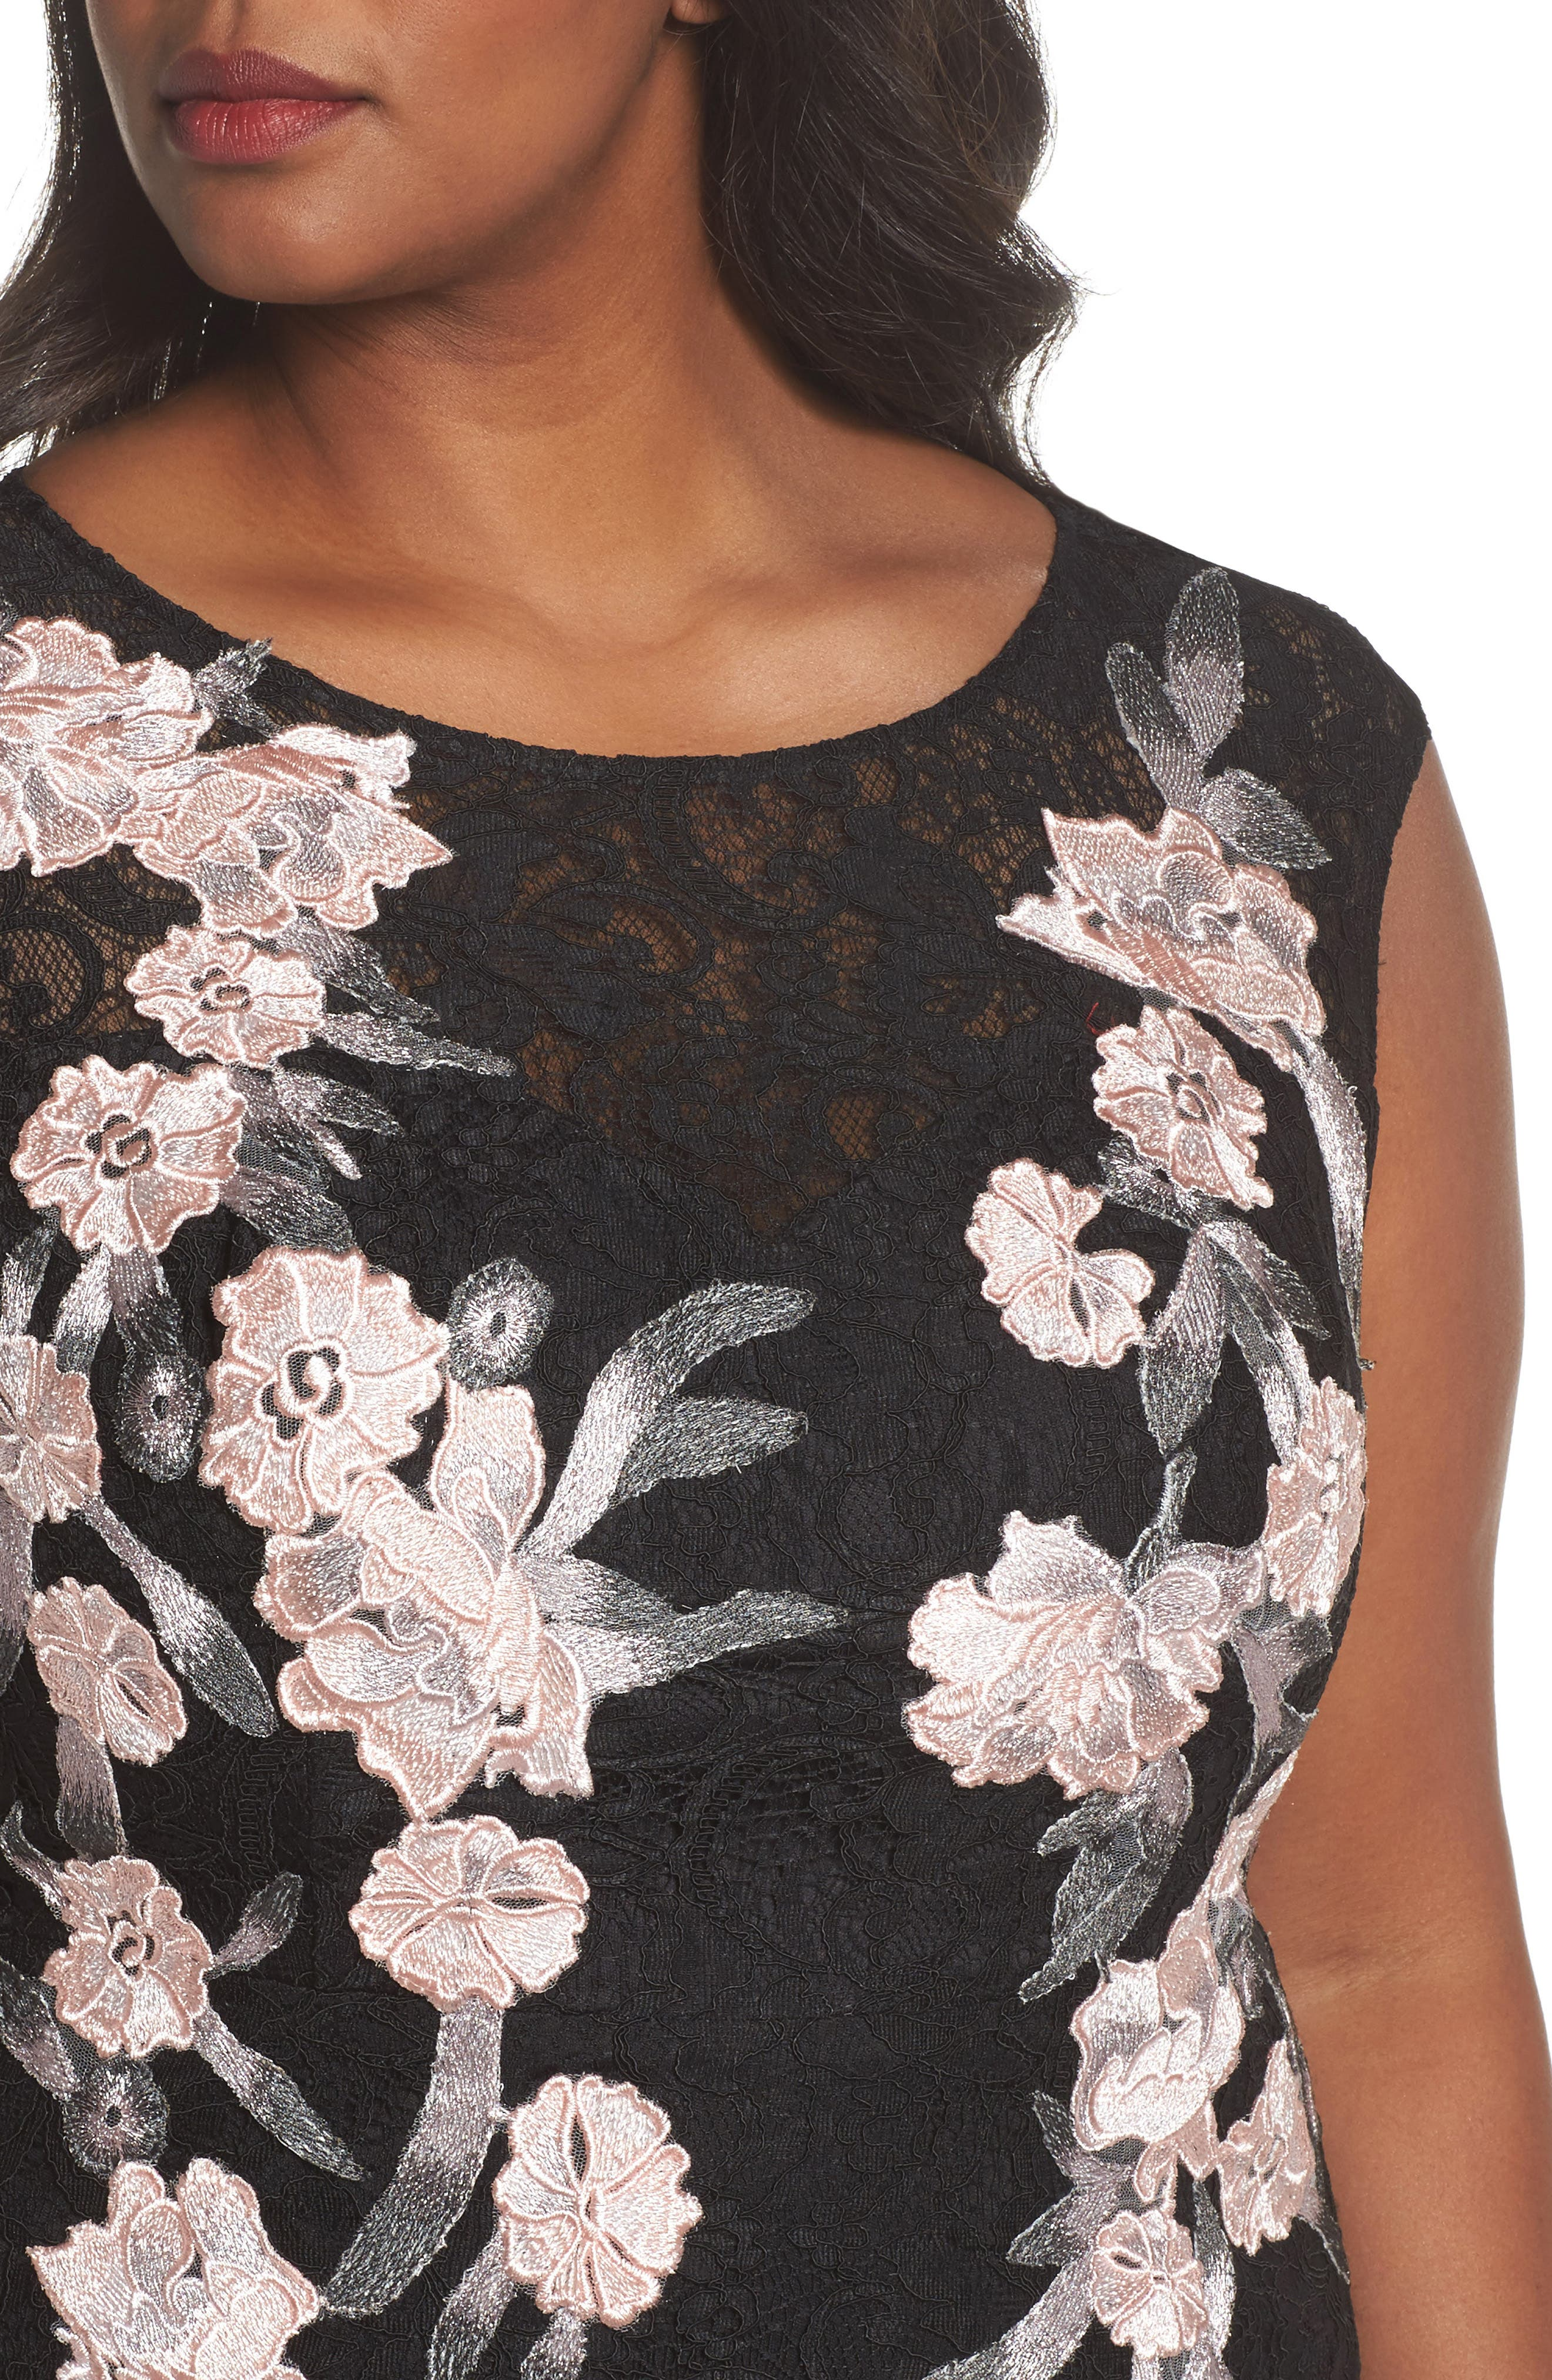 Floral Embroidered Lace Gown,                             Alternate thumbnail 4, color,                             BLACK/ BLUSH